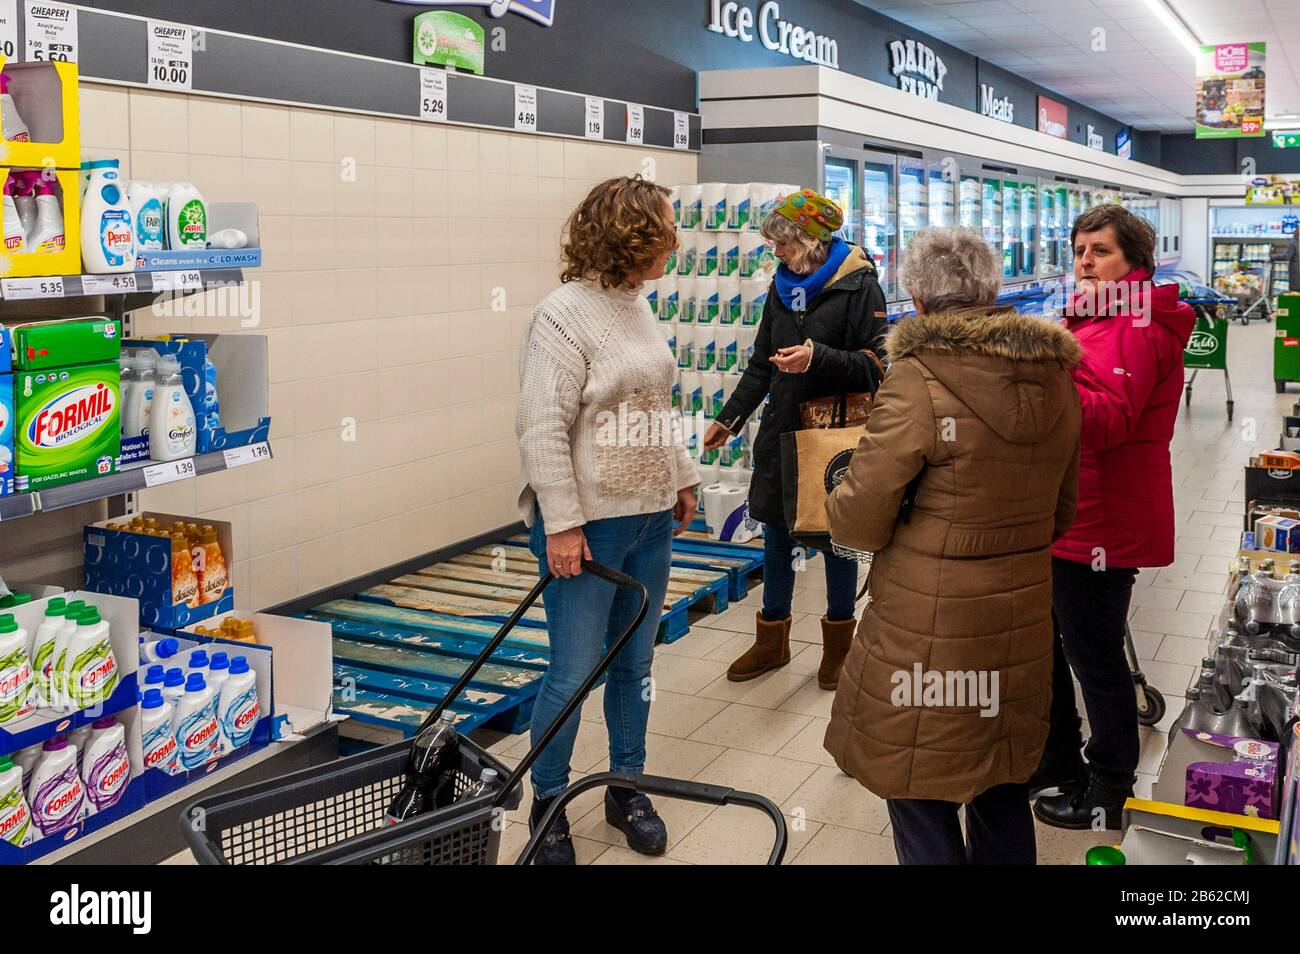 clonakilty-west-cork-ireland-9th-mar-2020-the-panic-associated-with-covid-19-has-finally-hit-west-cork-lidl-in-clonakilty-was-cleared-of-toilet-rolls-early-today-with-staff-expecting-a-delivery-tomorrow-this-comes-as-every-st-patricks-day-parade-in-ireland-has-been-cancelled-due-to-the-coronavirus-credit-andy-gibsonalamy-live-news-2B62CMJ.jpg